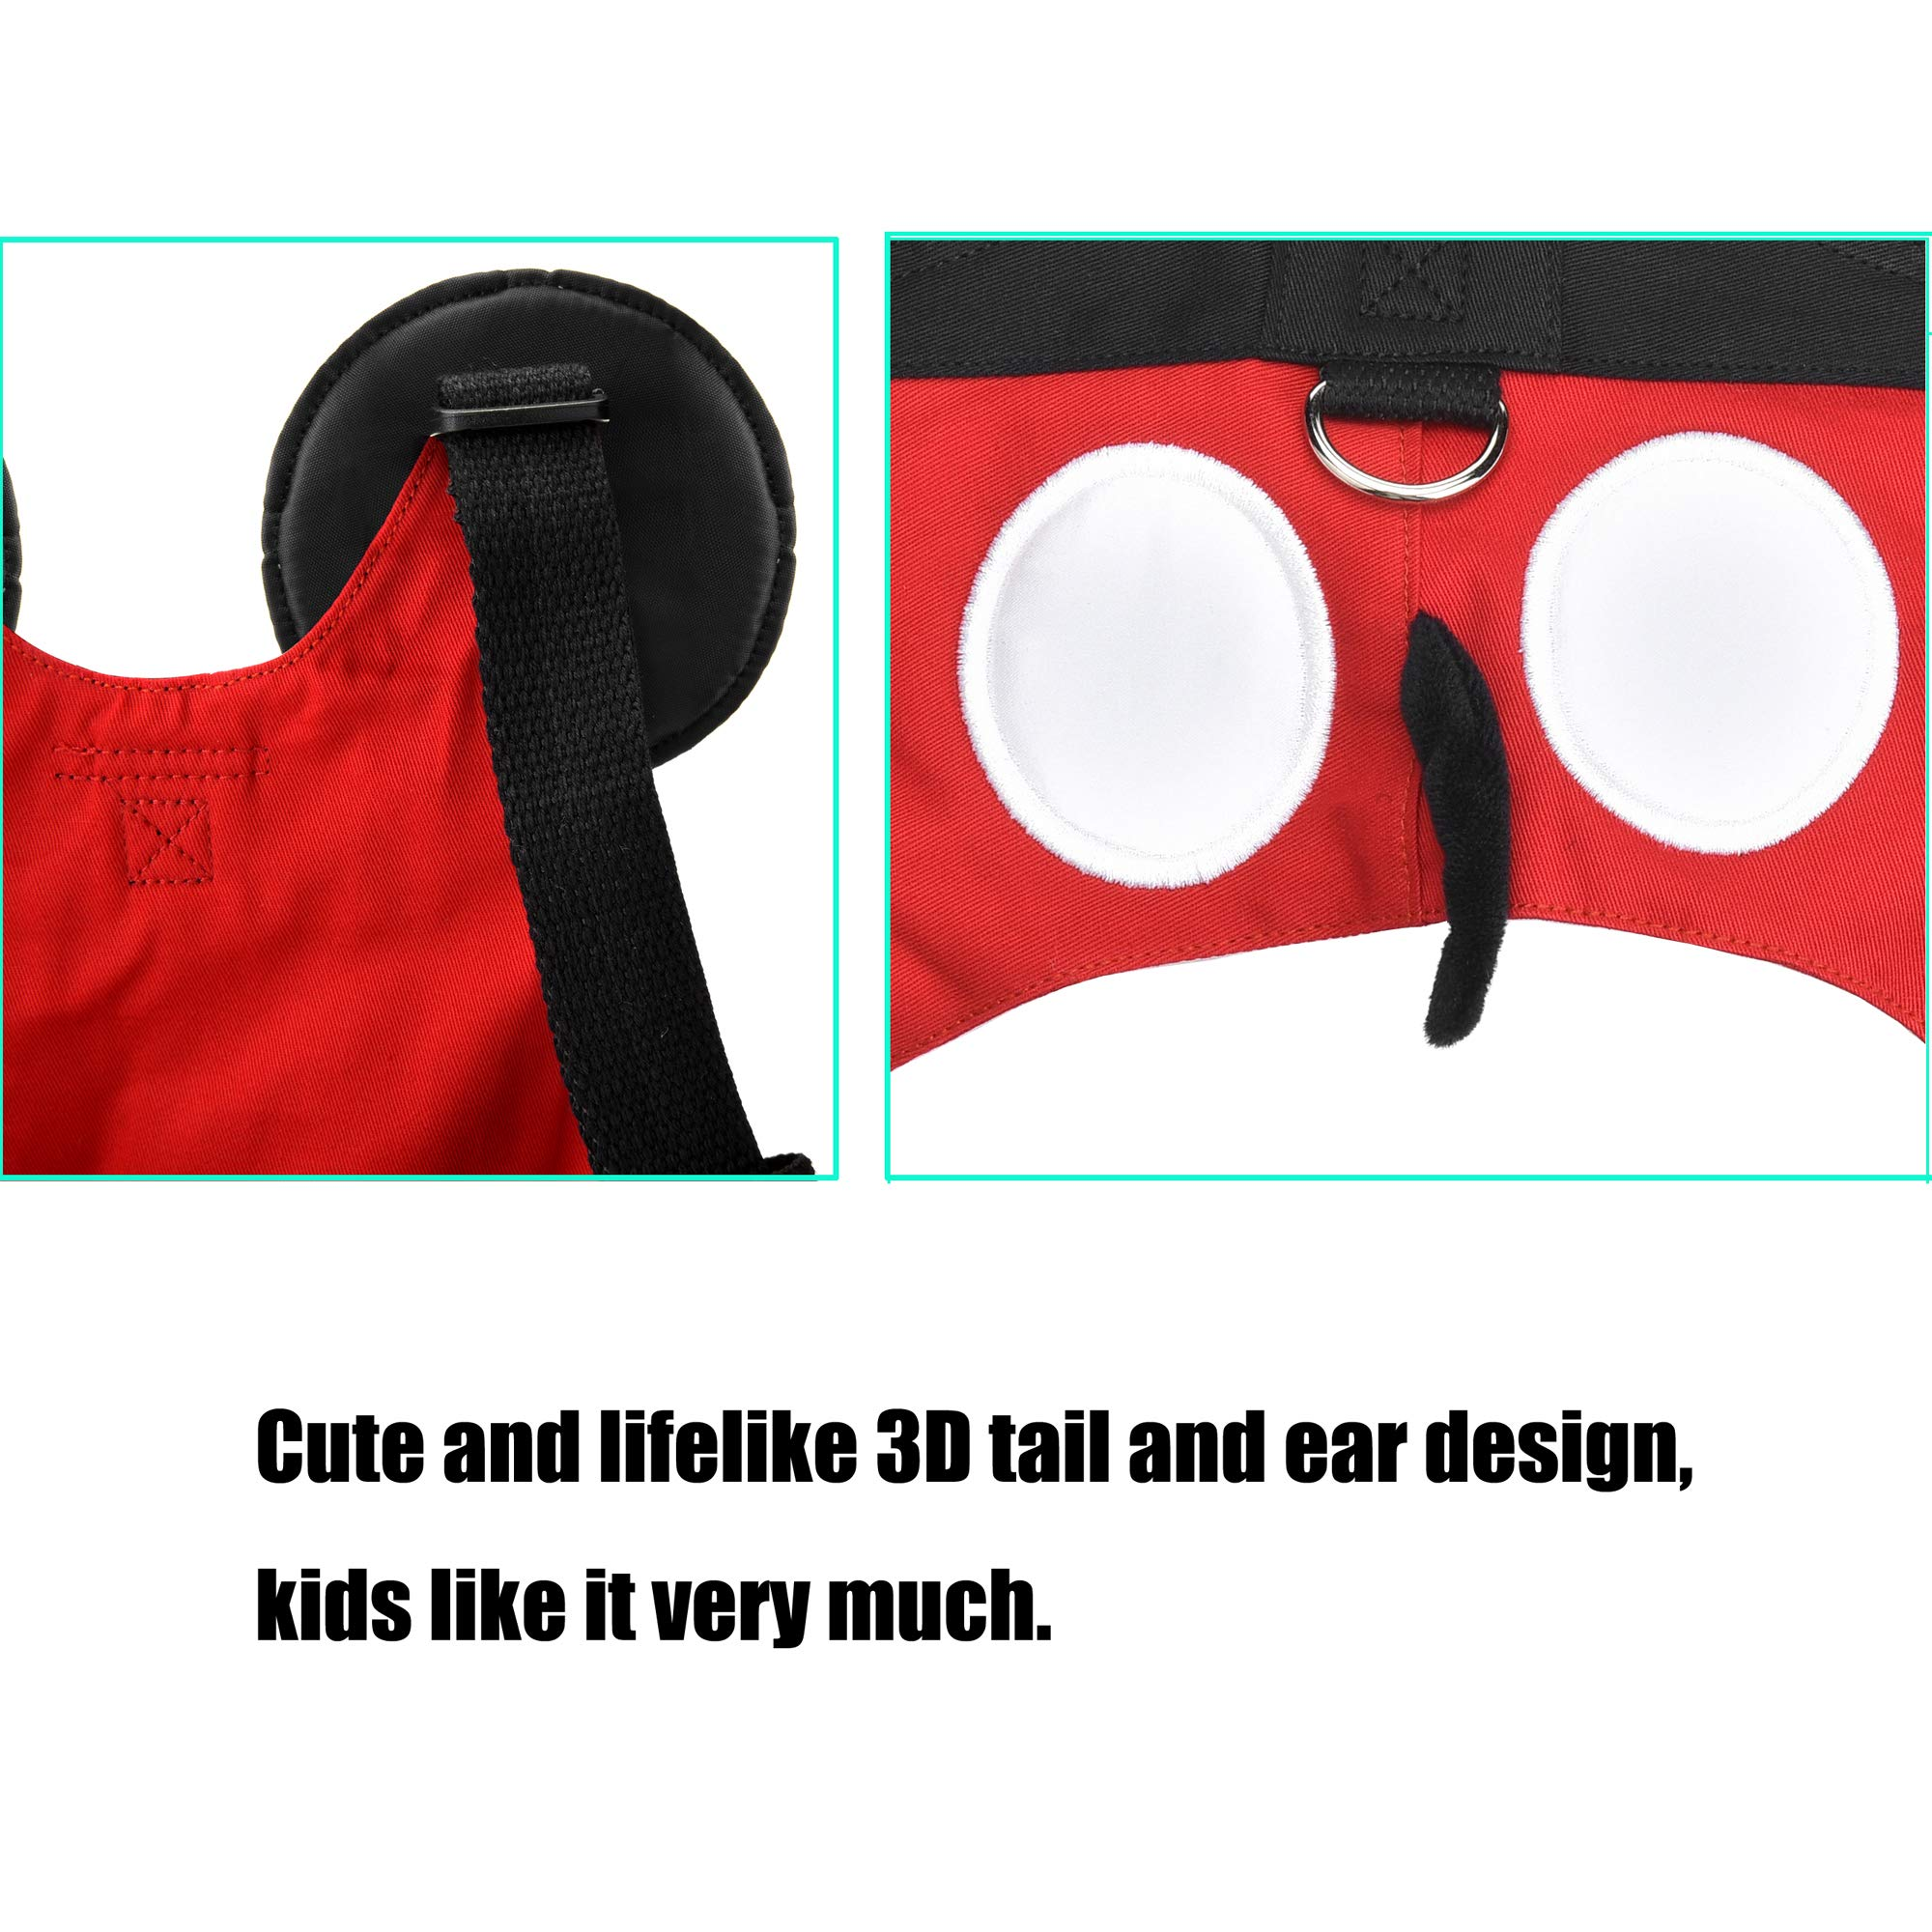 Toddler Leash & Harness, Yimidear Child Anti Lost Leash Baby Cute Safety Harness Belt Strap Hold Kids Close While Walking for Boys and Girls Fits 1-5 Years Old(Red) by Yimidear (Image #6)